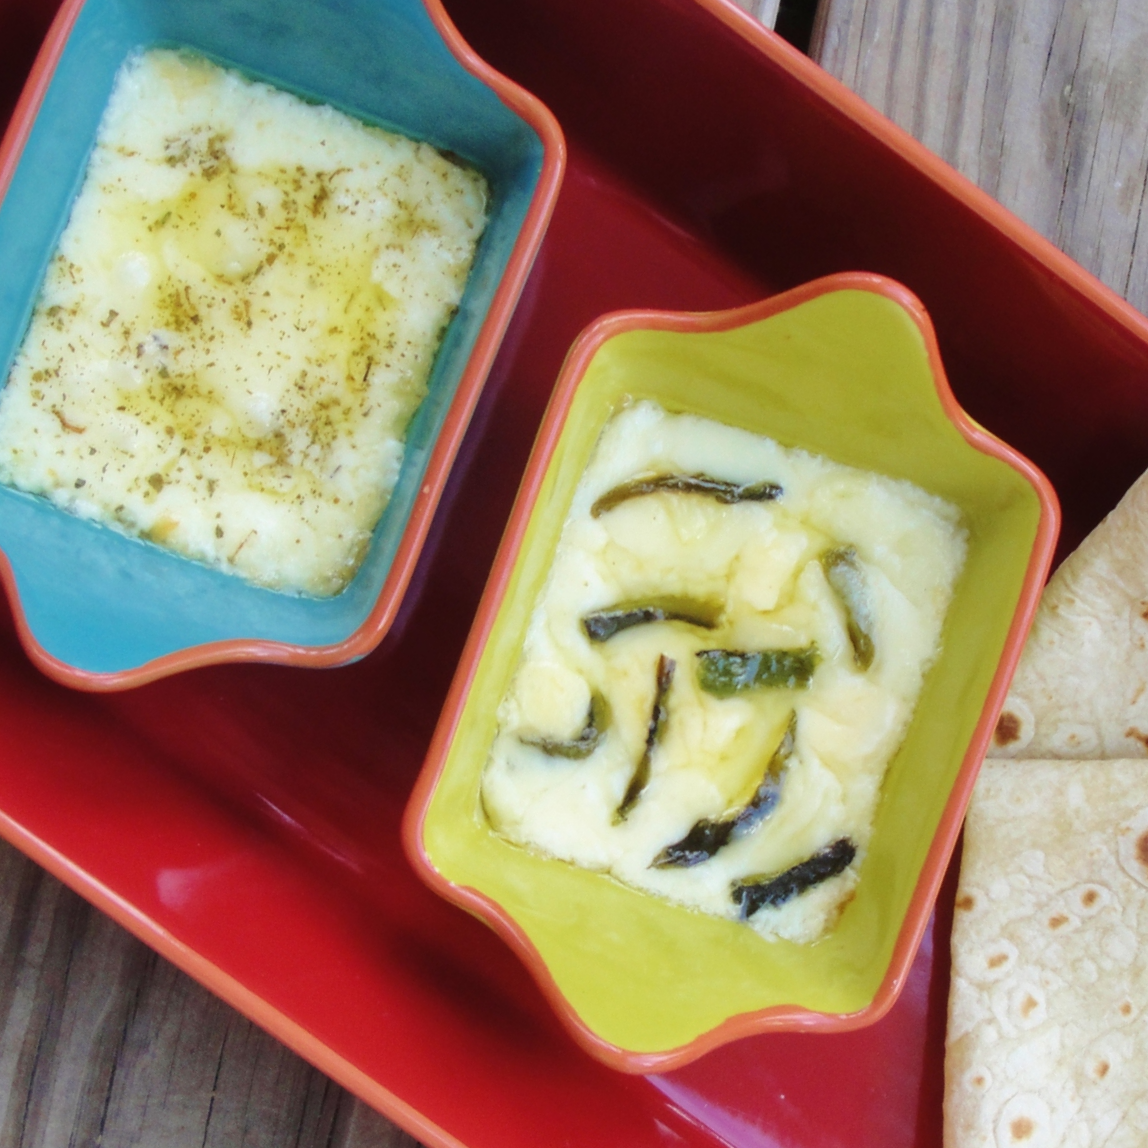 Queso Fundido made with Chihuahua cheese and Mexican oregano (left) and roasted Poblano chiles (right), served with warm flour tortillas. Made in the Adventure Kitchen, May 2015.